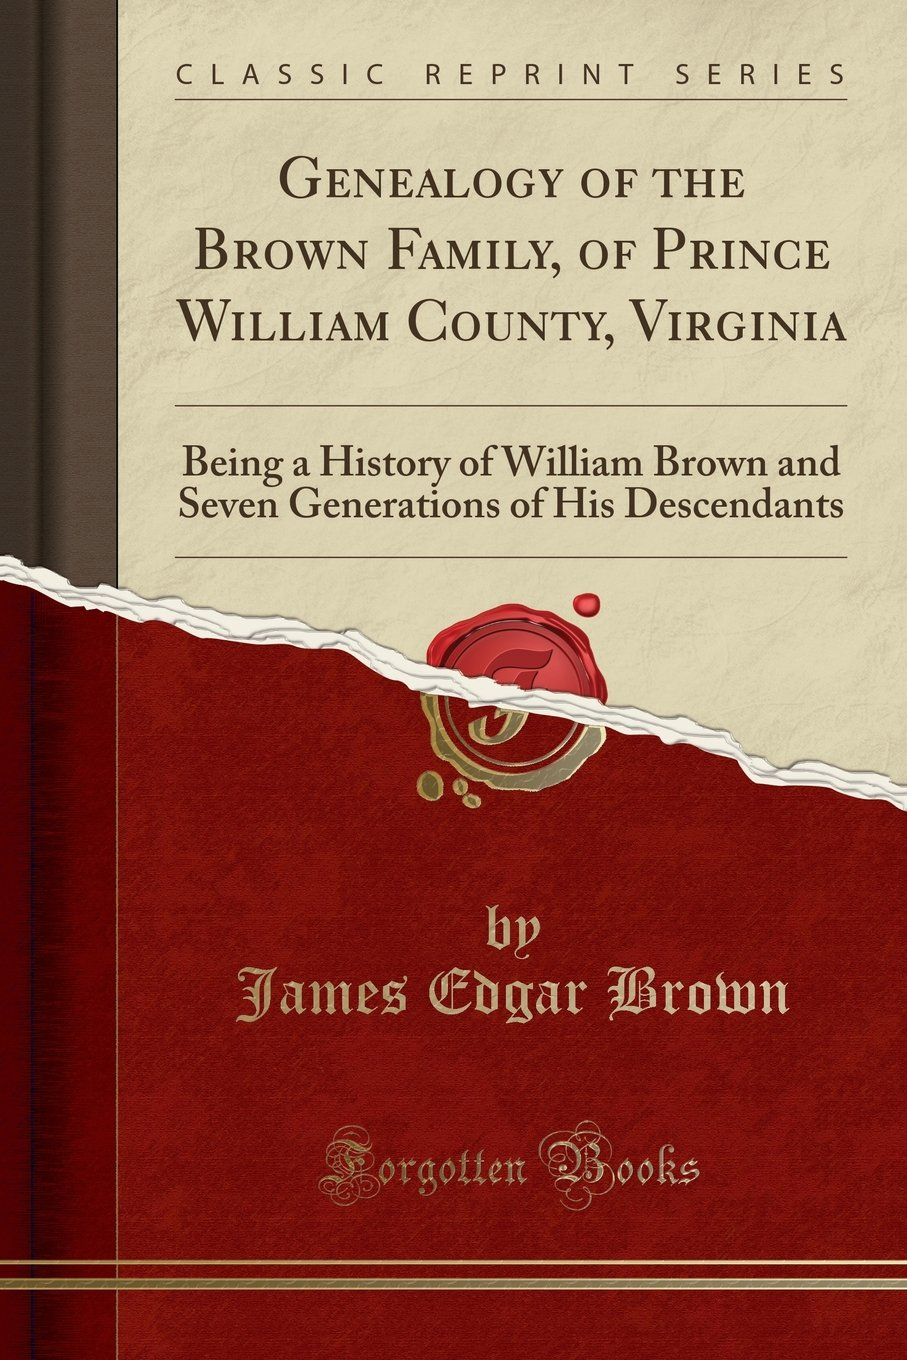 Read Online Genealogy of the Brown Family, of Prince William County, Virginia: Being a History of William Brown and Seven Generations of His Descendants (Classic Reprint) PDF